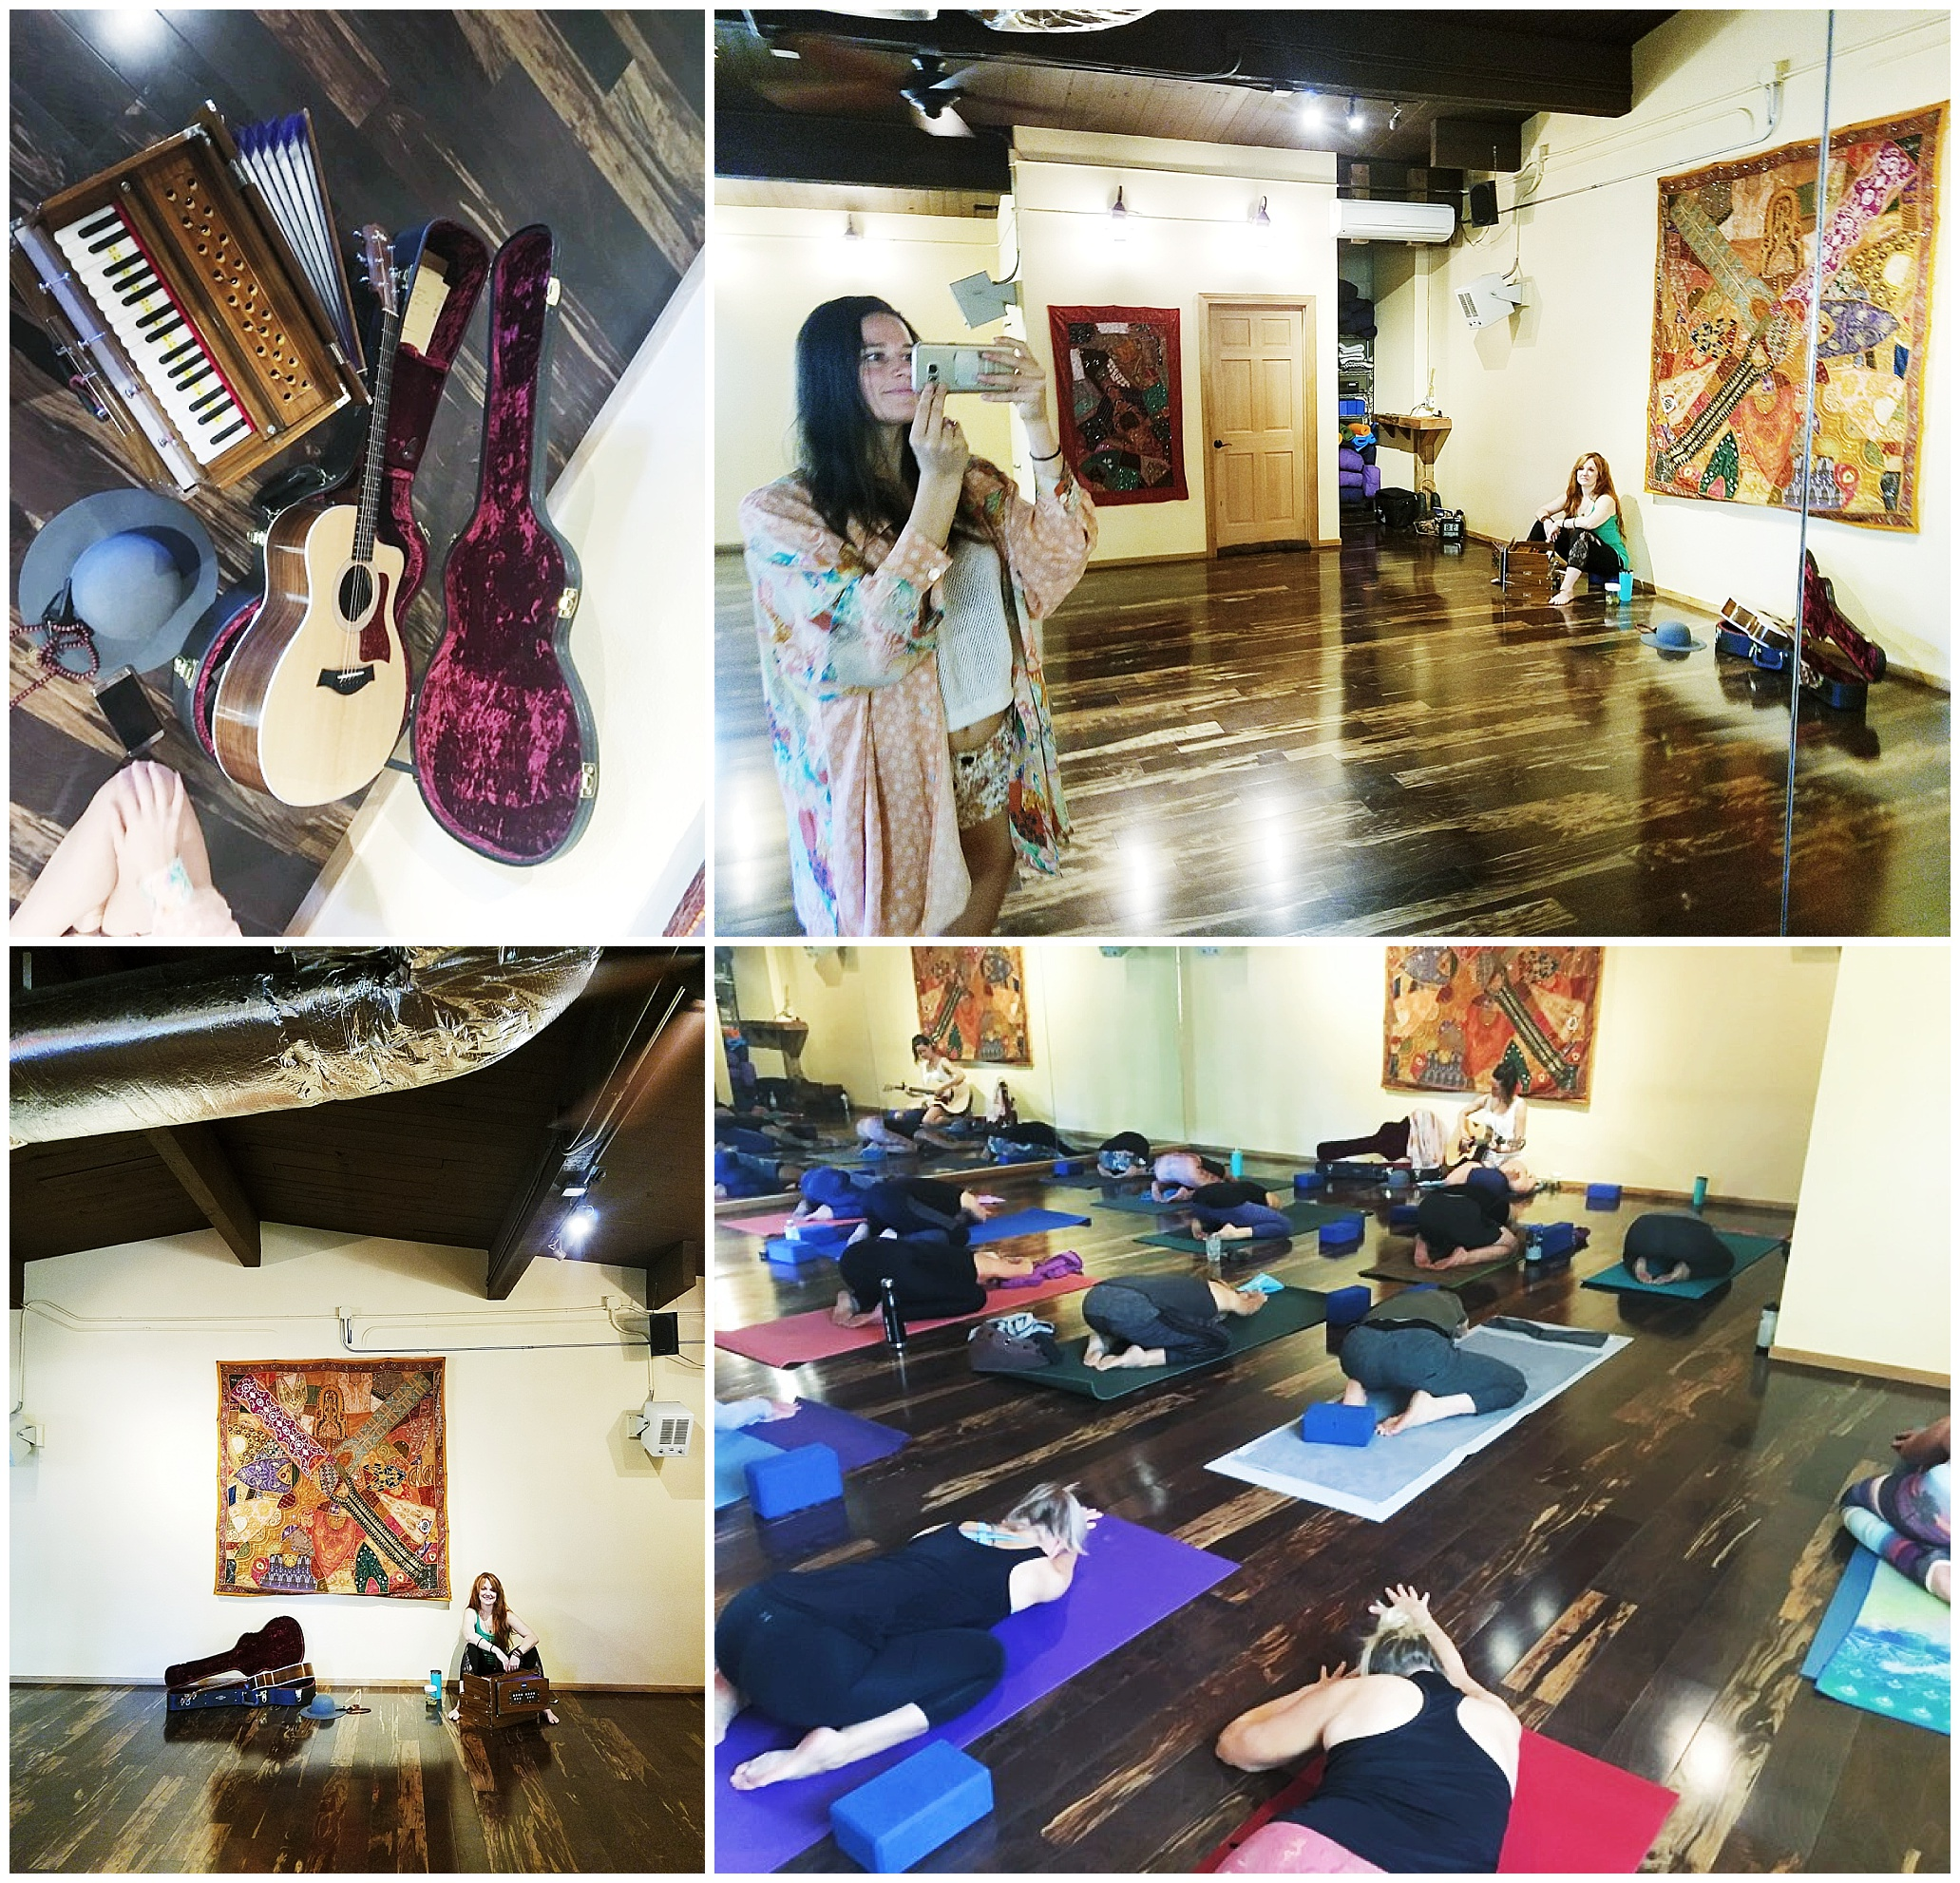 cha wilde - yoga music - josephine silverwolf - ignite dance and yoga studio north bend - harmonium - seattle wall tapestry